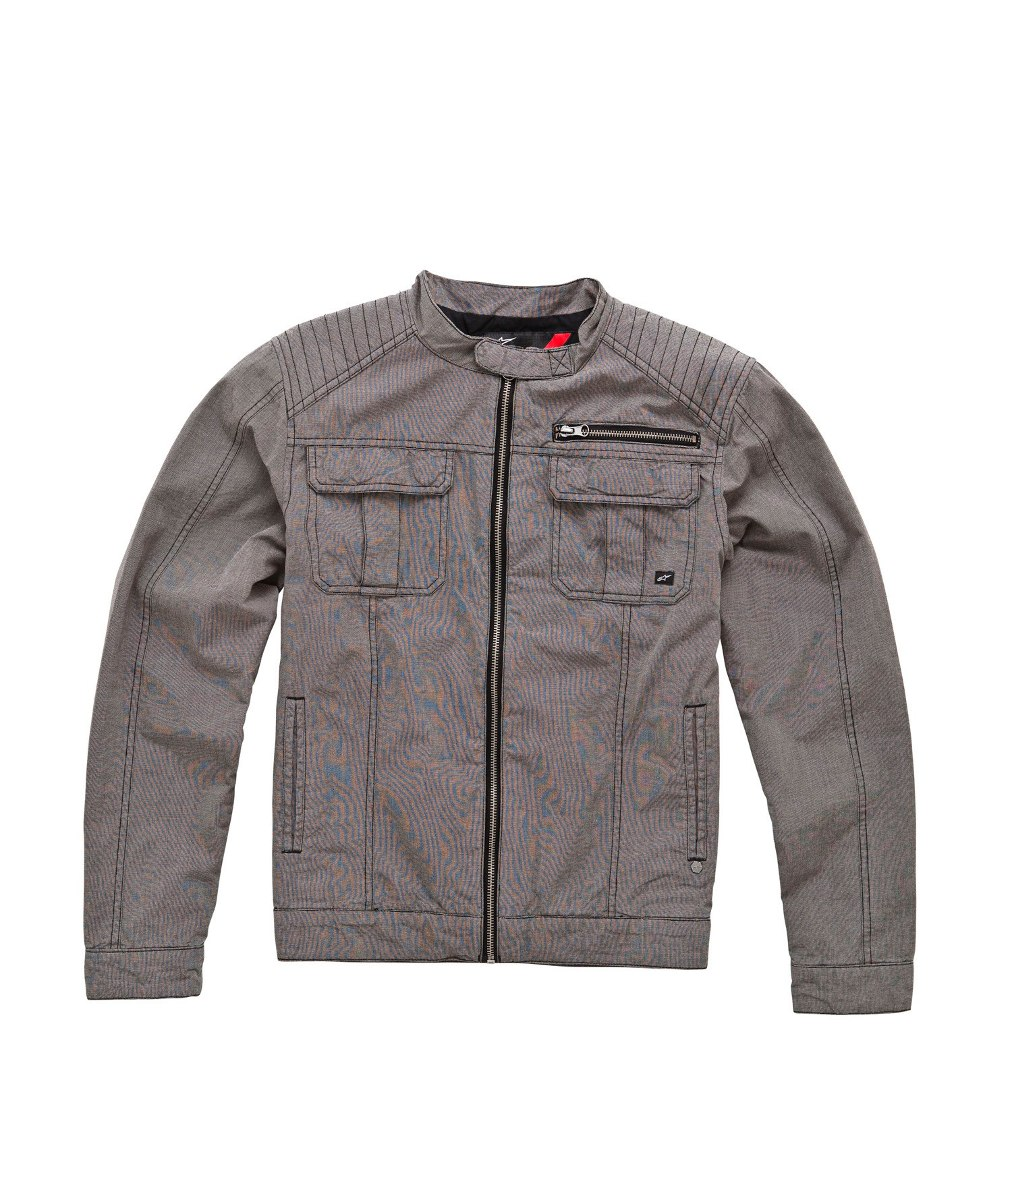 Camperas - Alpinestars Campera Journey Jacket